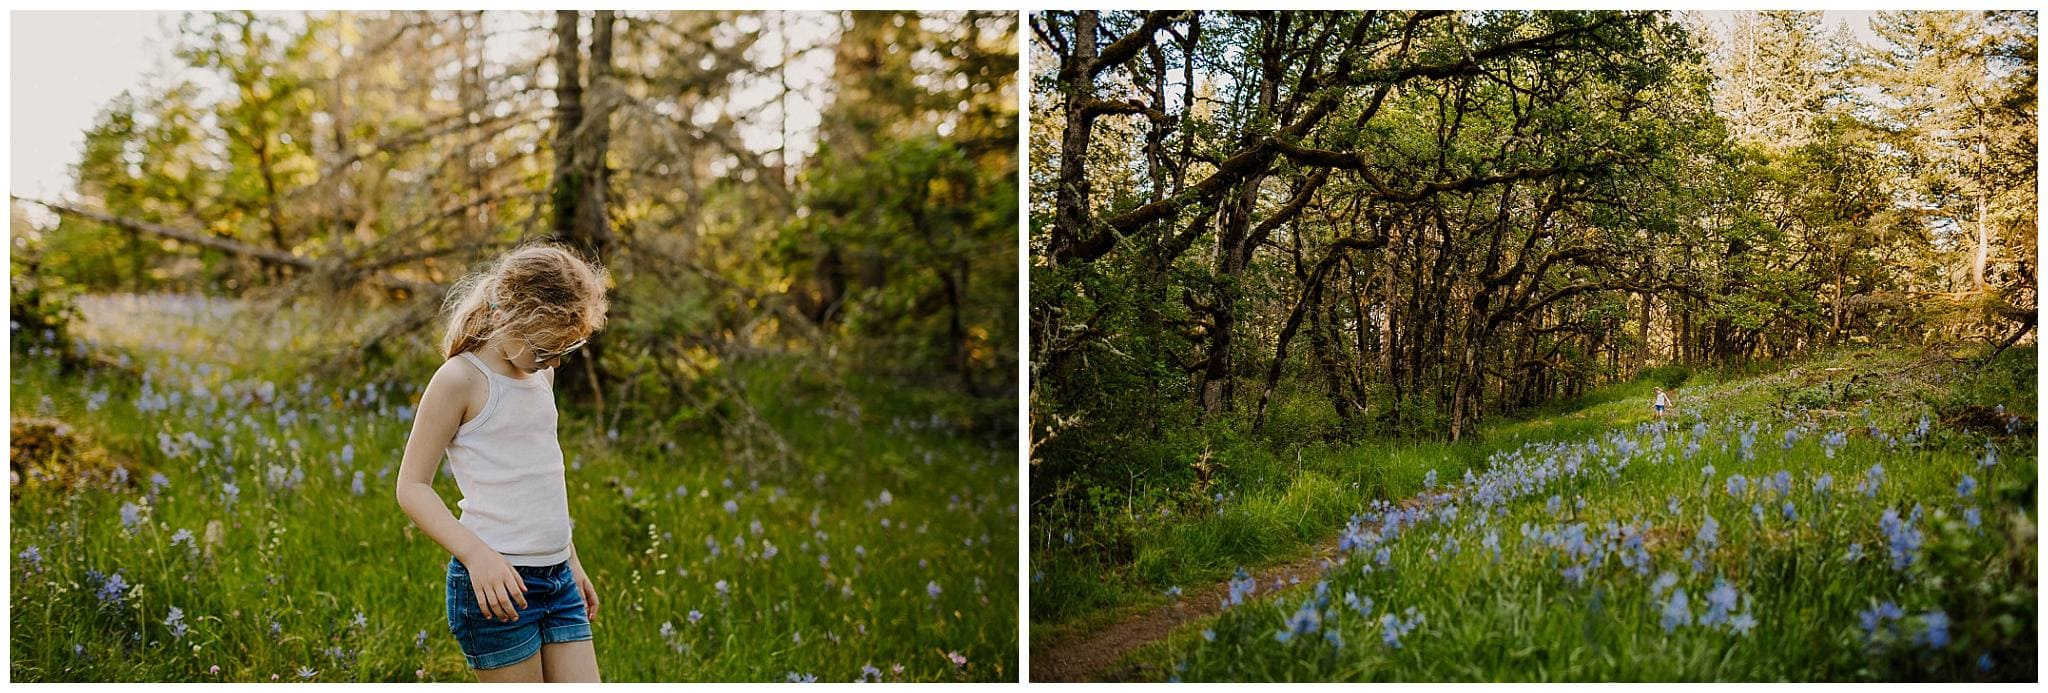 girl in a field of camassia lillies in camas near Portland Oregon in the spring